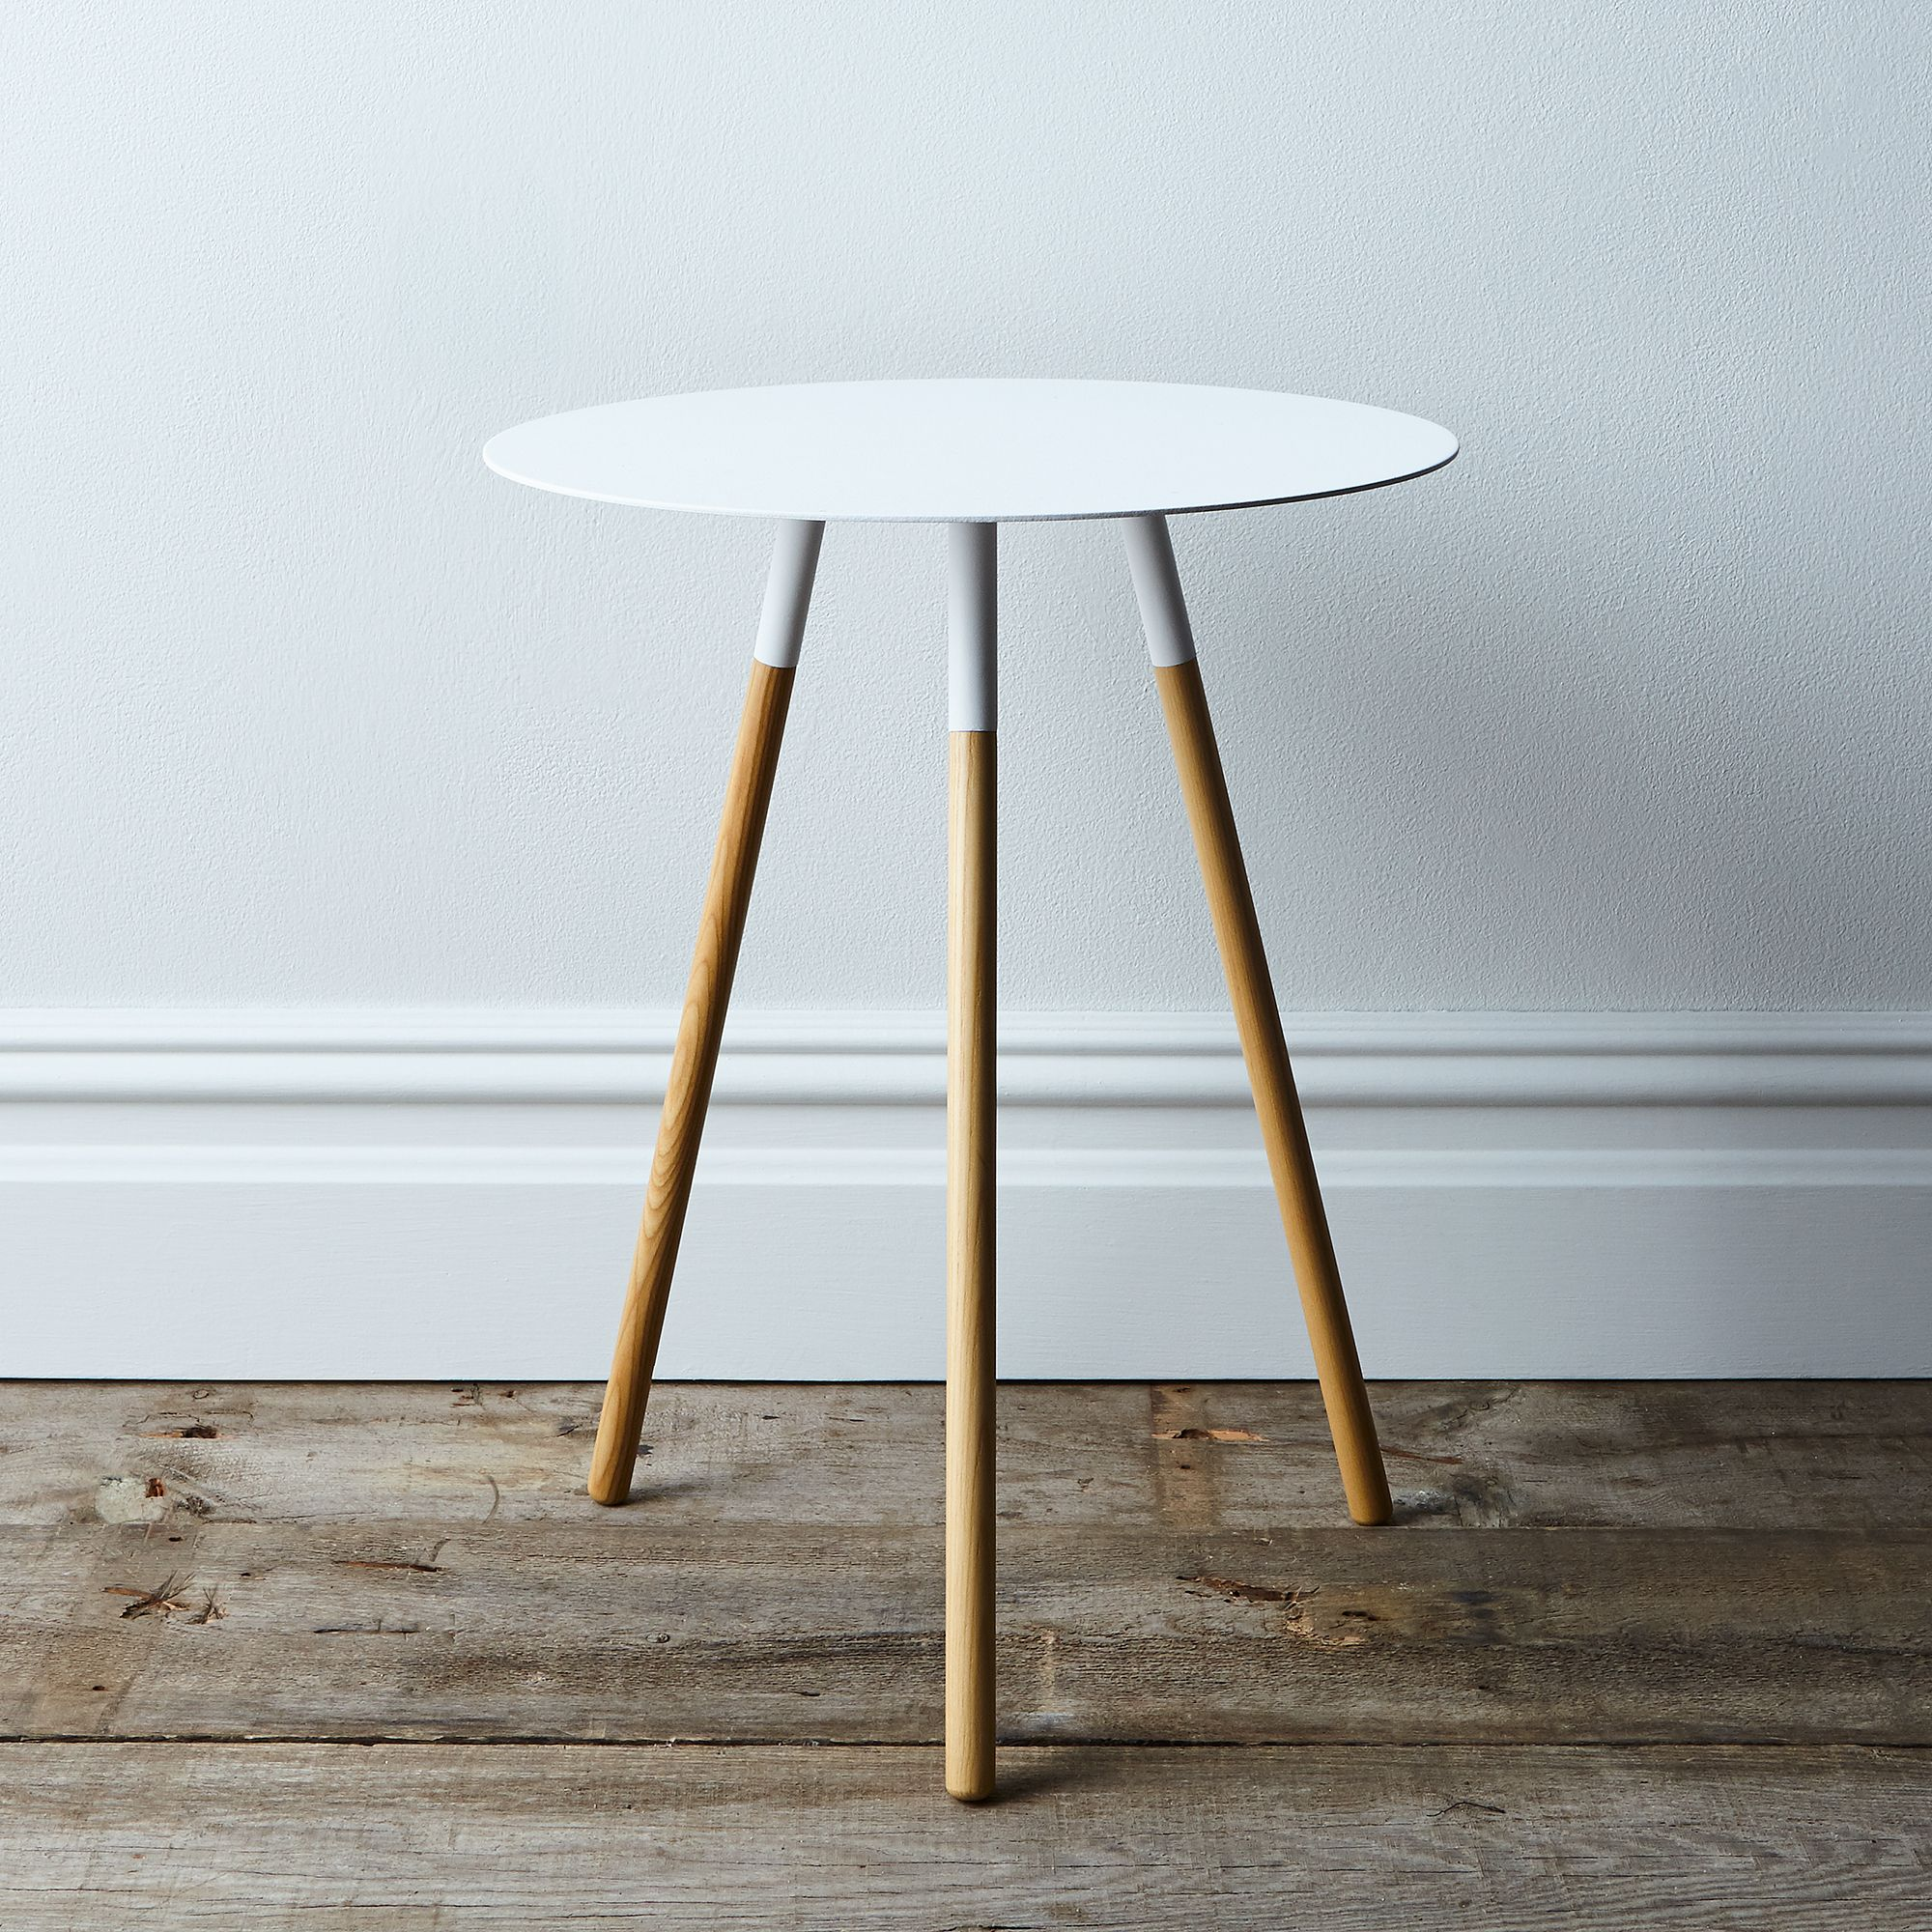 home goods accent tables the fantastic real round log end steel wood side table yamazaki and silo rocky luten kitchen chairs set ashley tufted mid century modern live edge leather